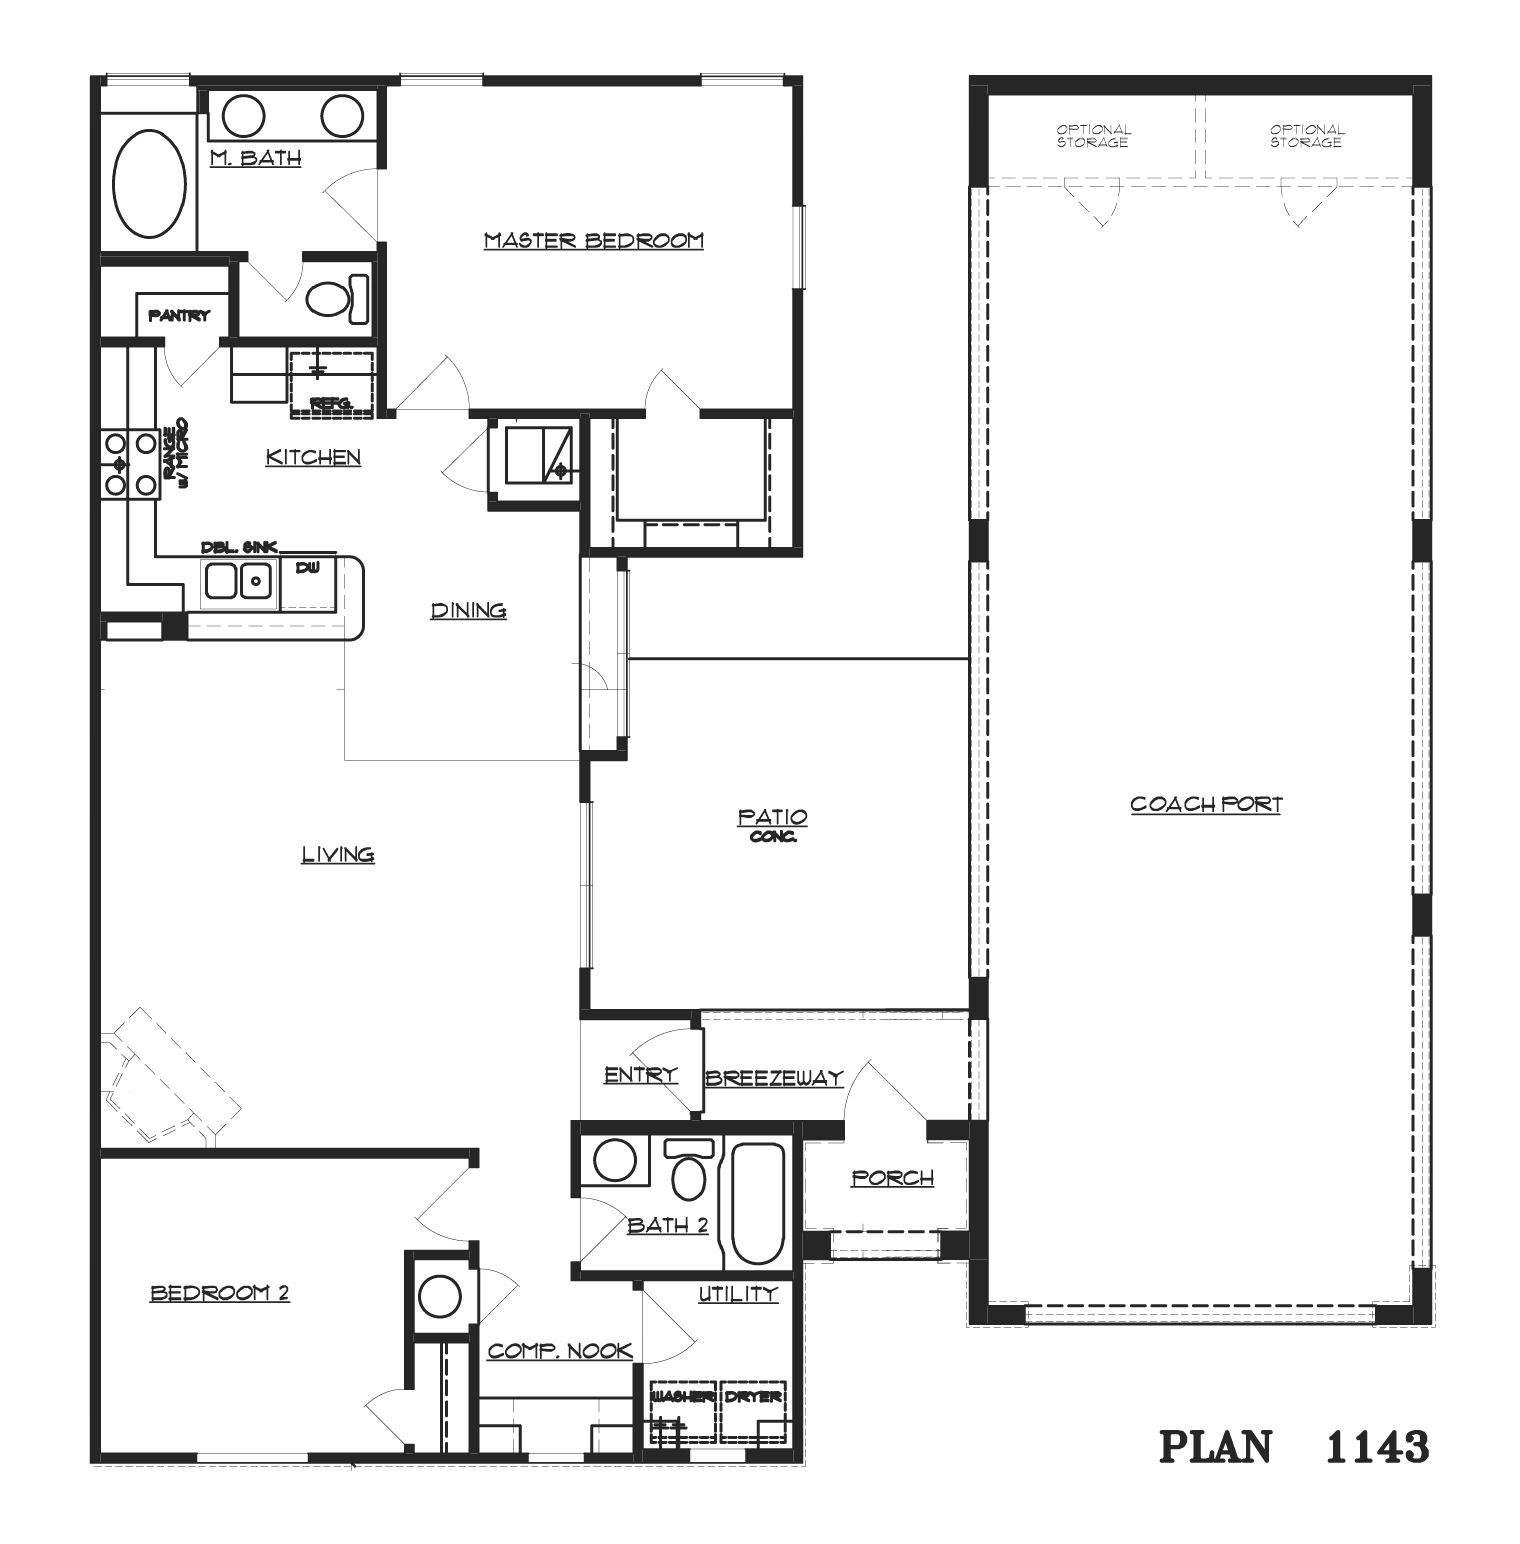 Rv Garage With Living Quarters: Barn Homes Floor Plans, Barndominium Floor